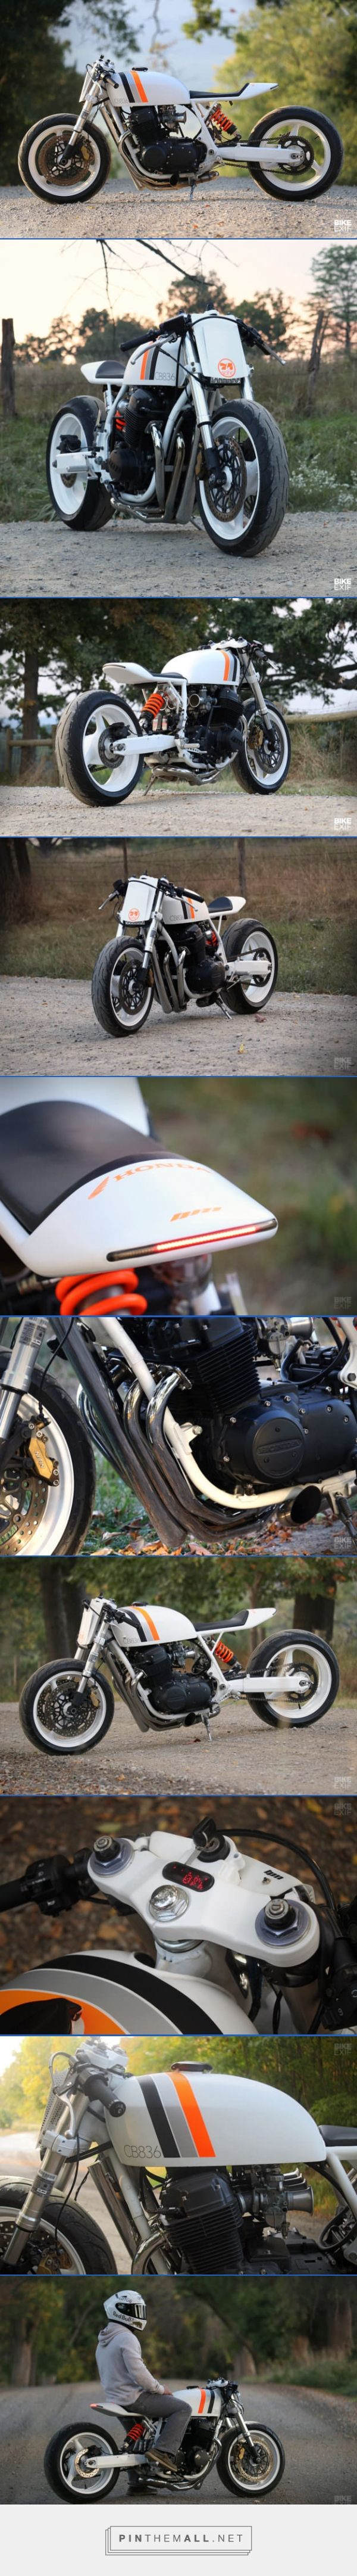 White Hot: A cafe racer CB750 from New York | Bike EXIF - created via https://pinthemall.net